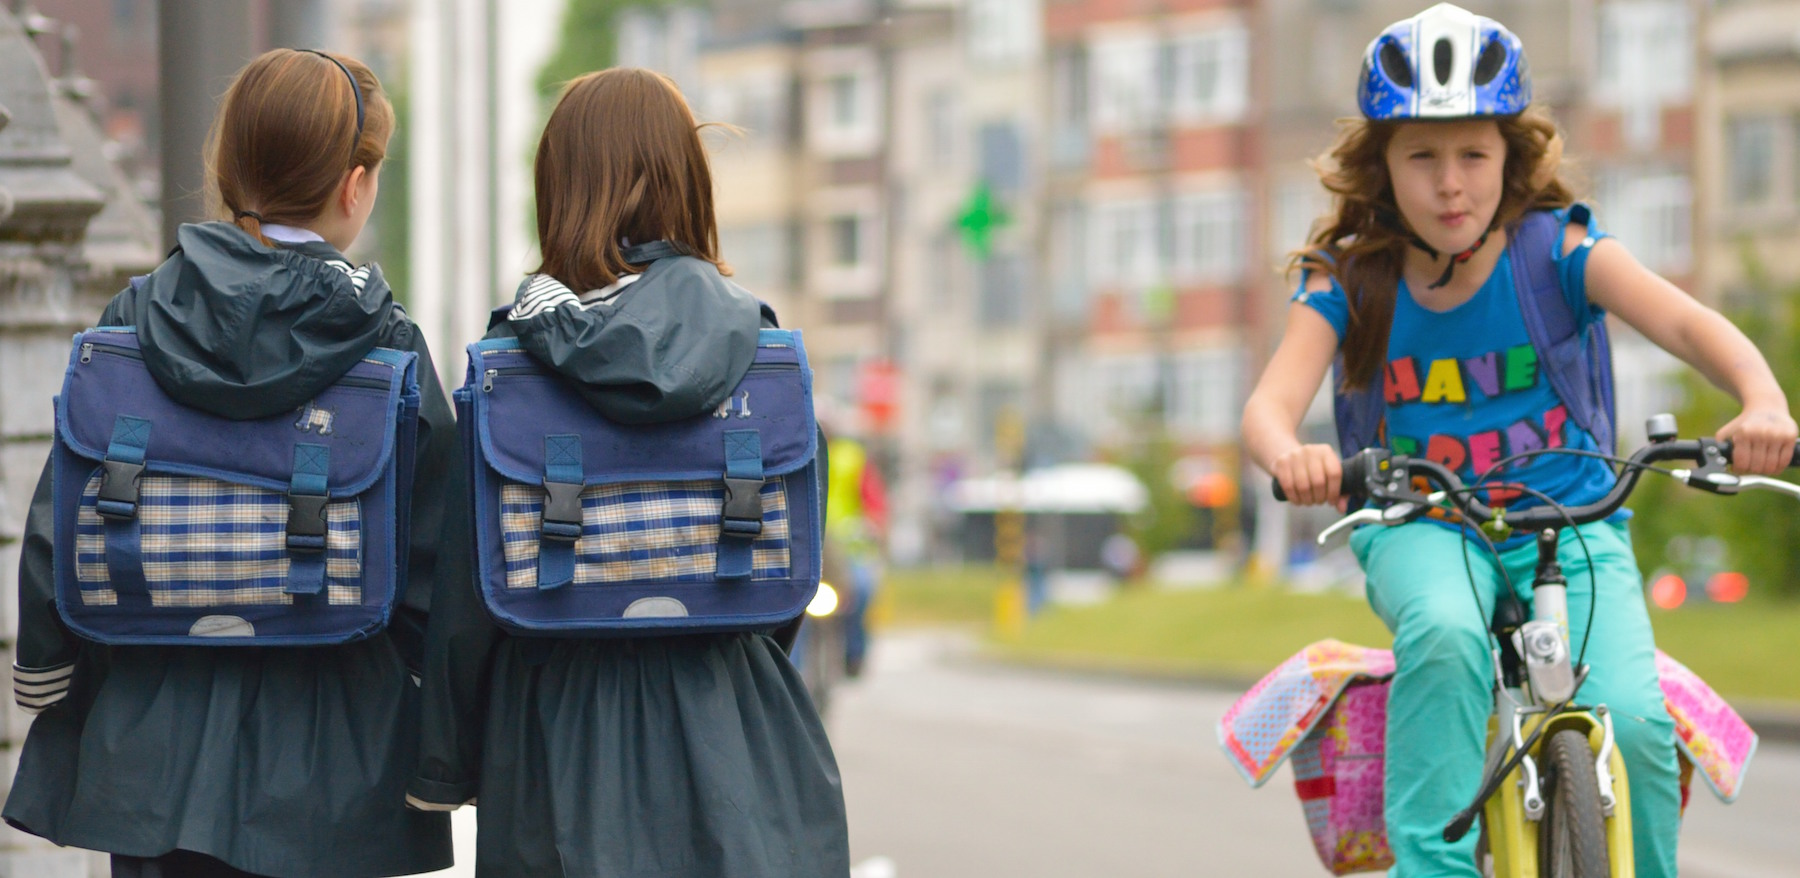 school-uniforms-and-girl-on-colorful-bike